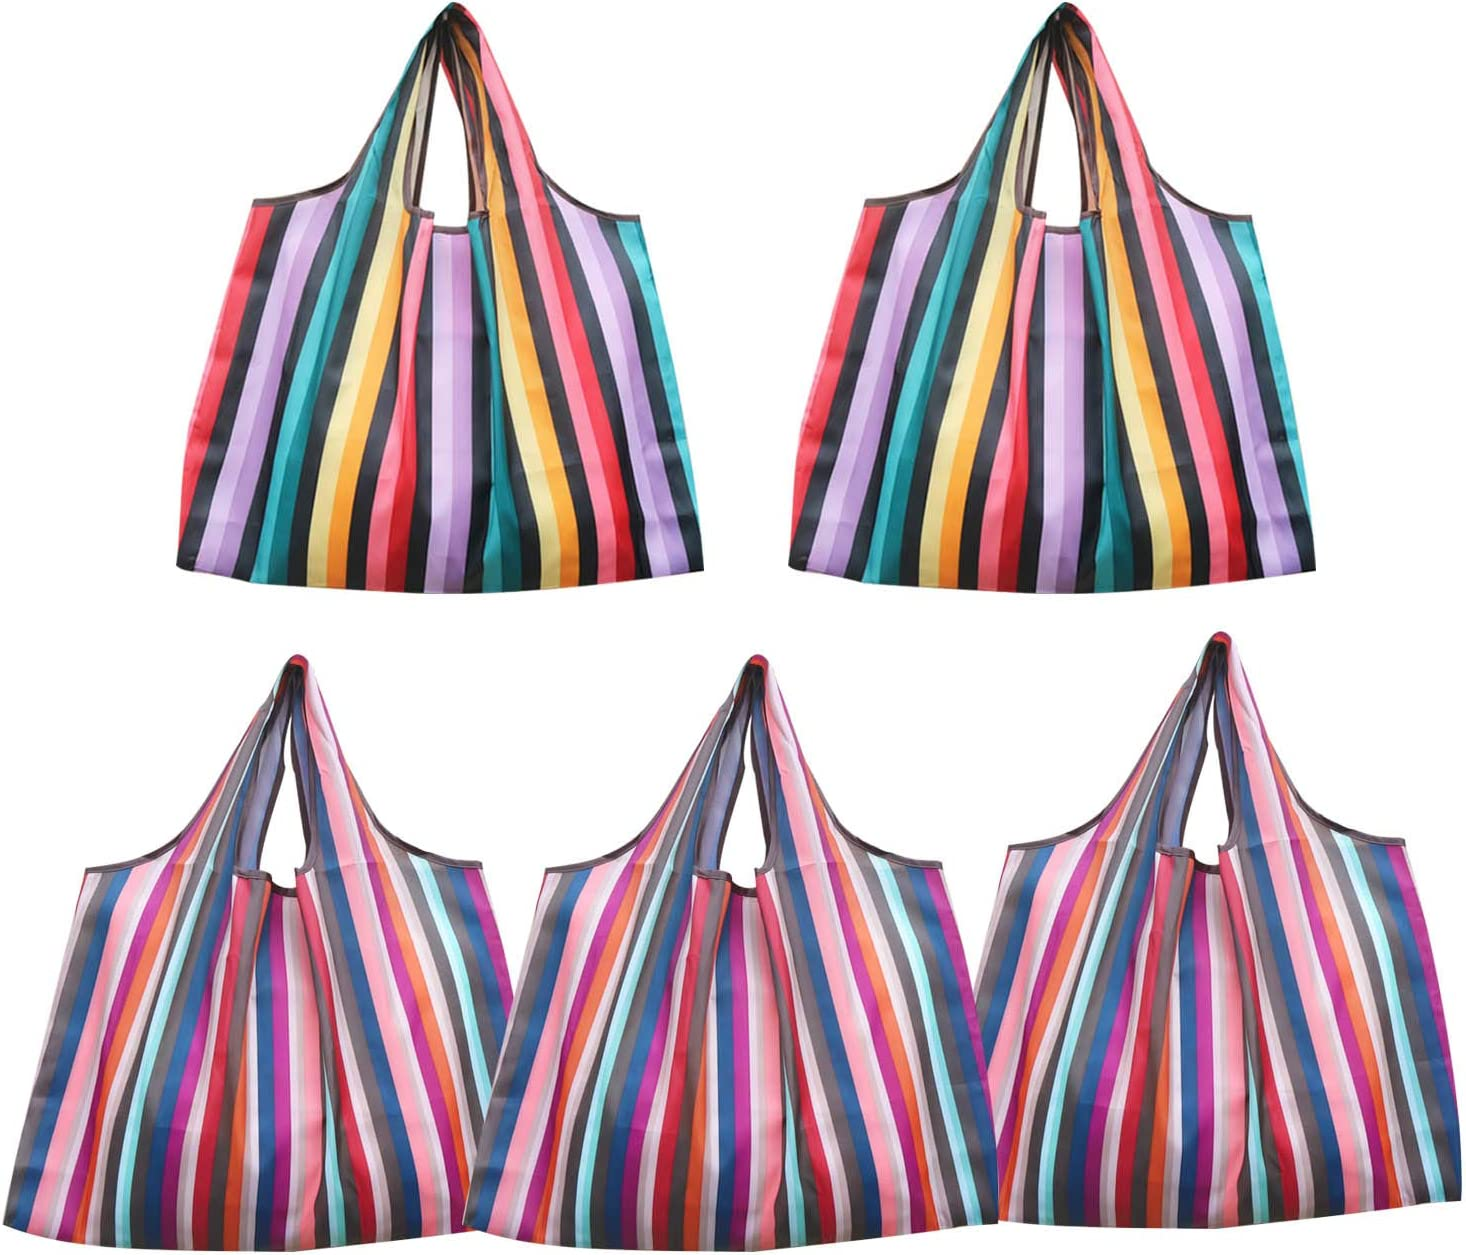 Reusable Shopping Bags,5 Pack Rainbow Prints Grocery Bags Heavy Duty Foldable and Washable Nylon Tote with Attached Pouch